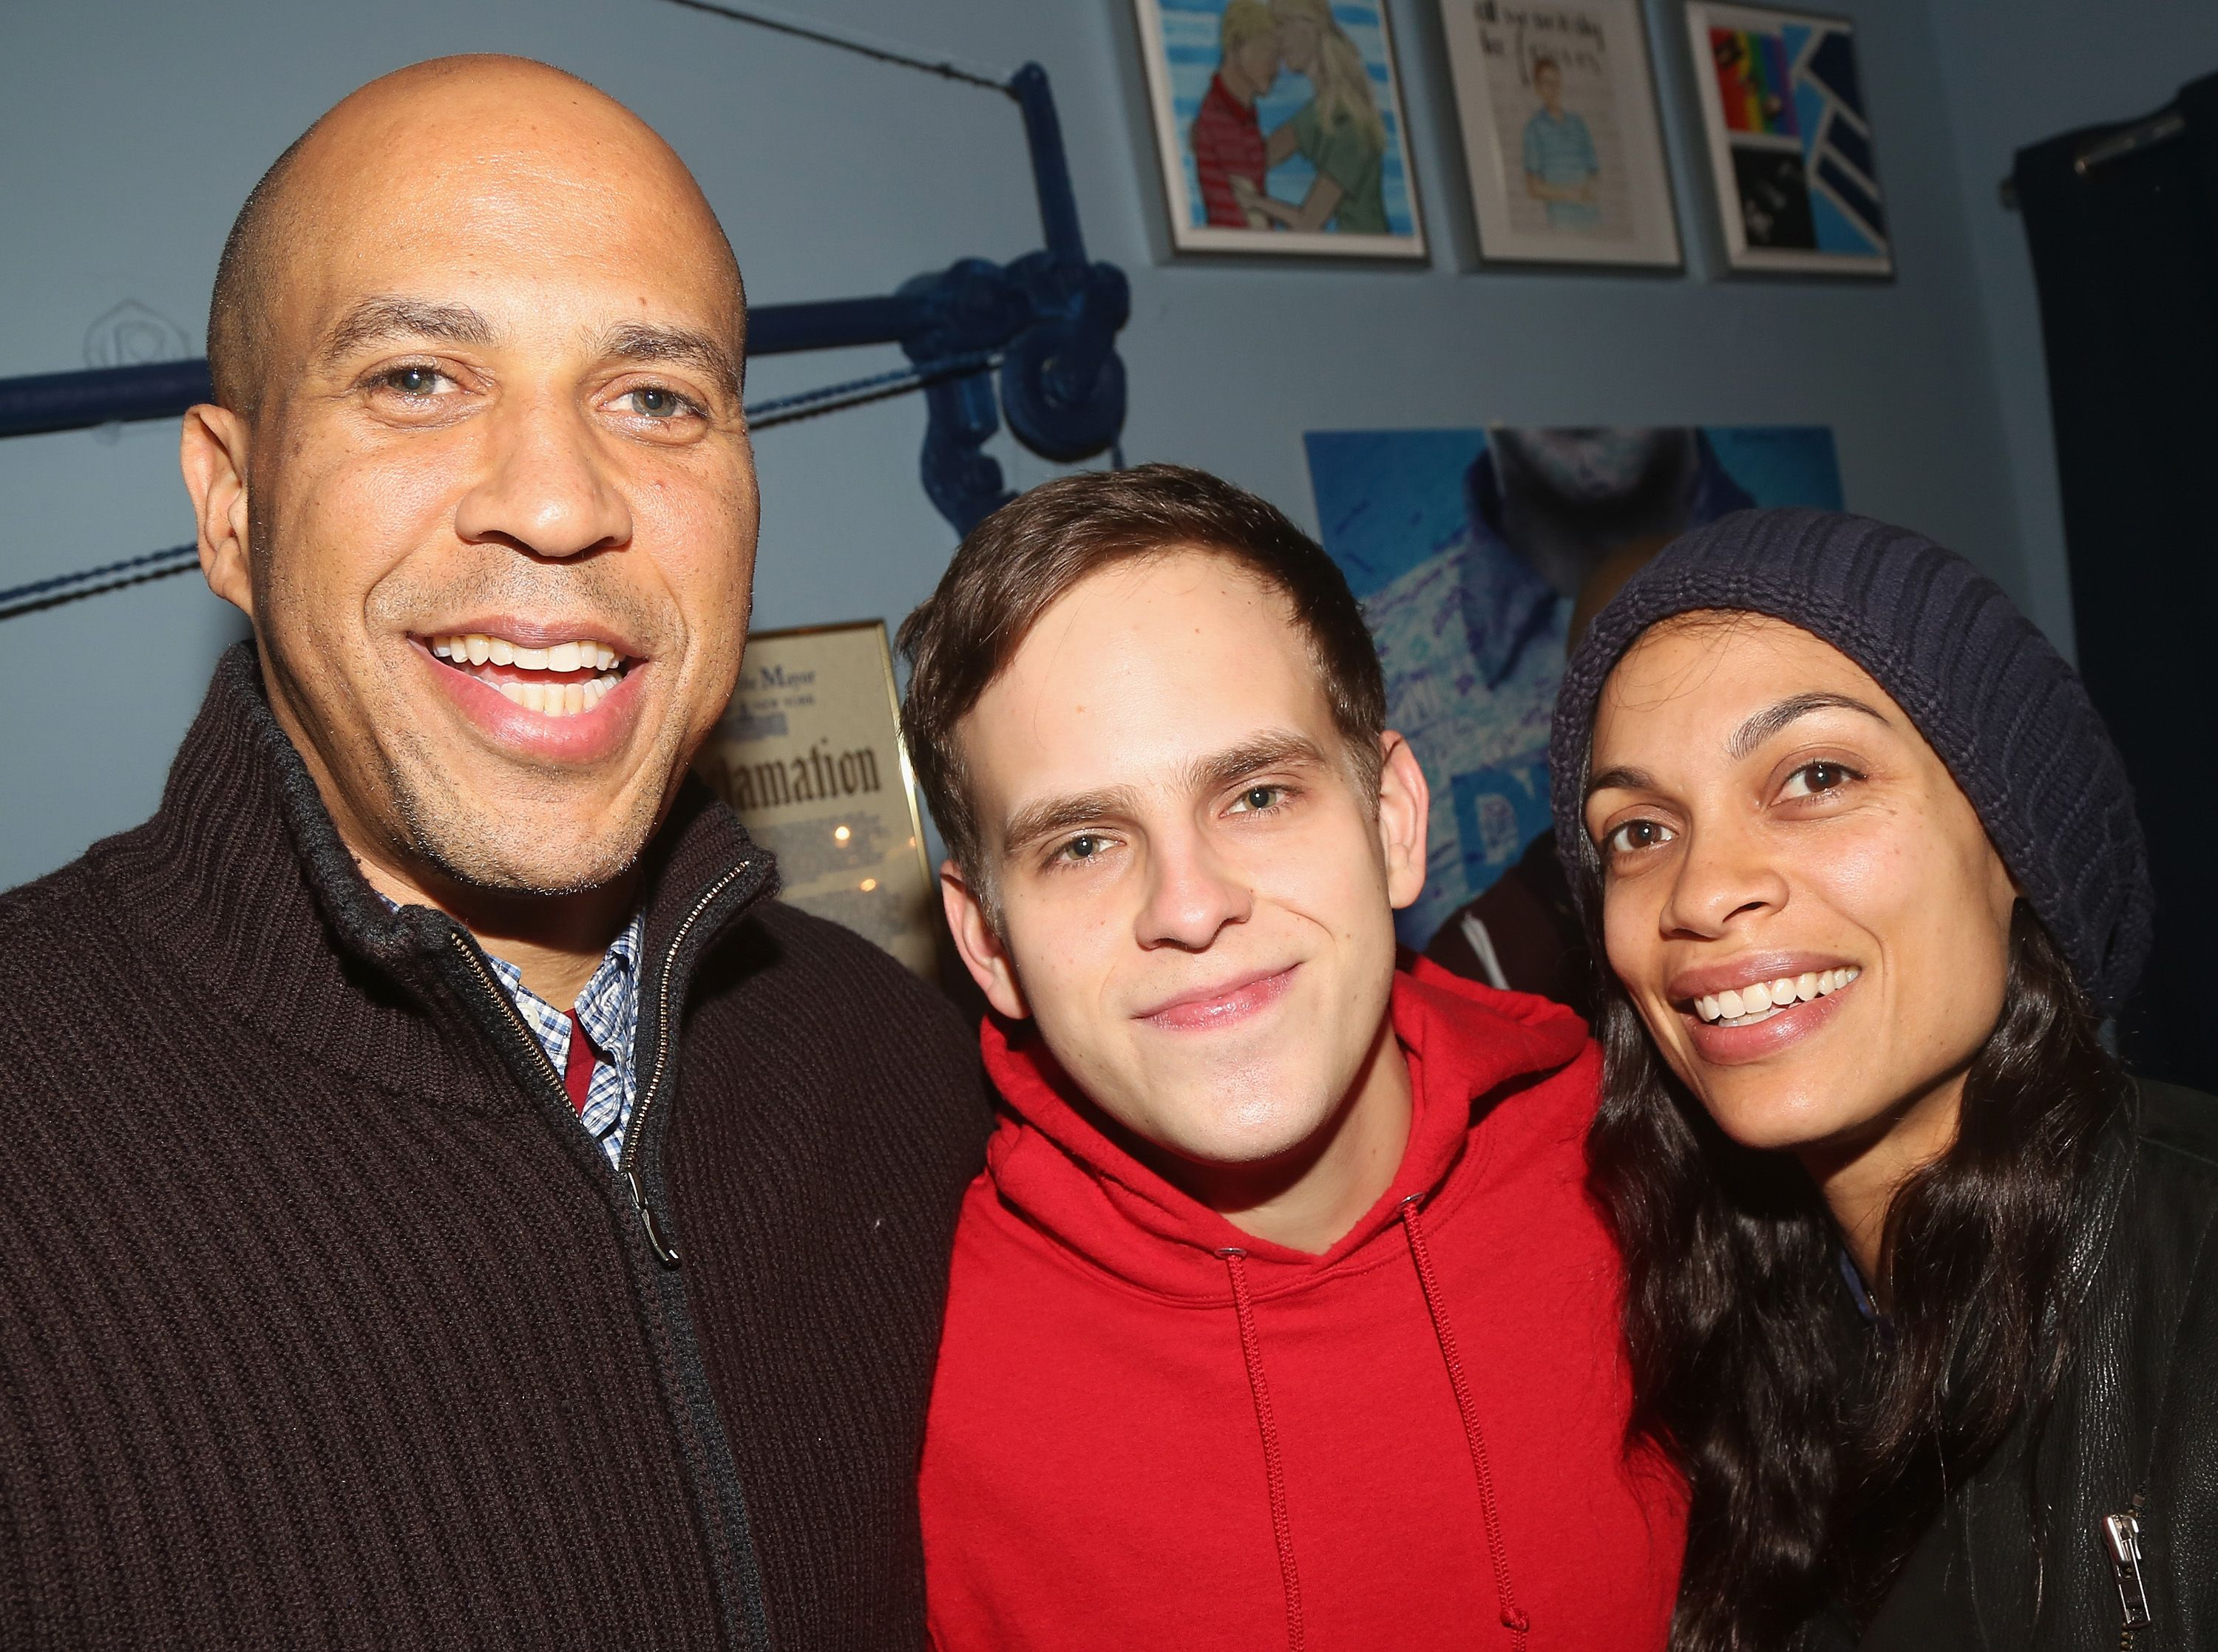 "Senator Cory Booker and Rosario Dawson with Taylor Trensch backstage at the Broadway musical ""Dear Evan Hansen"" in January of 2019."